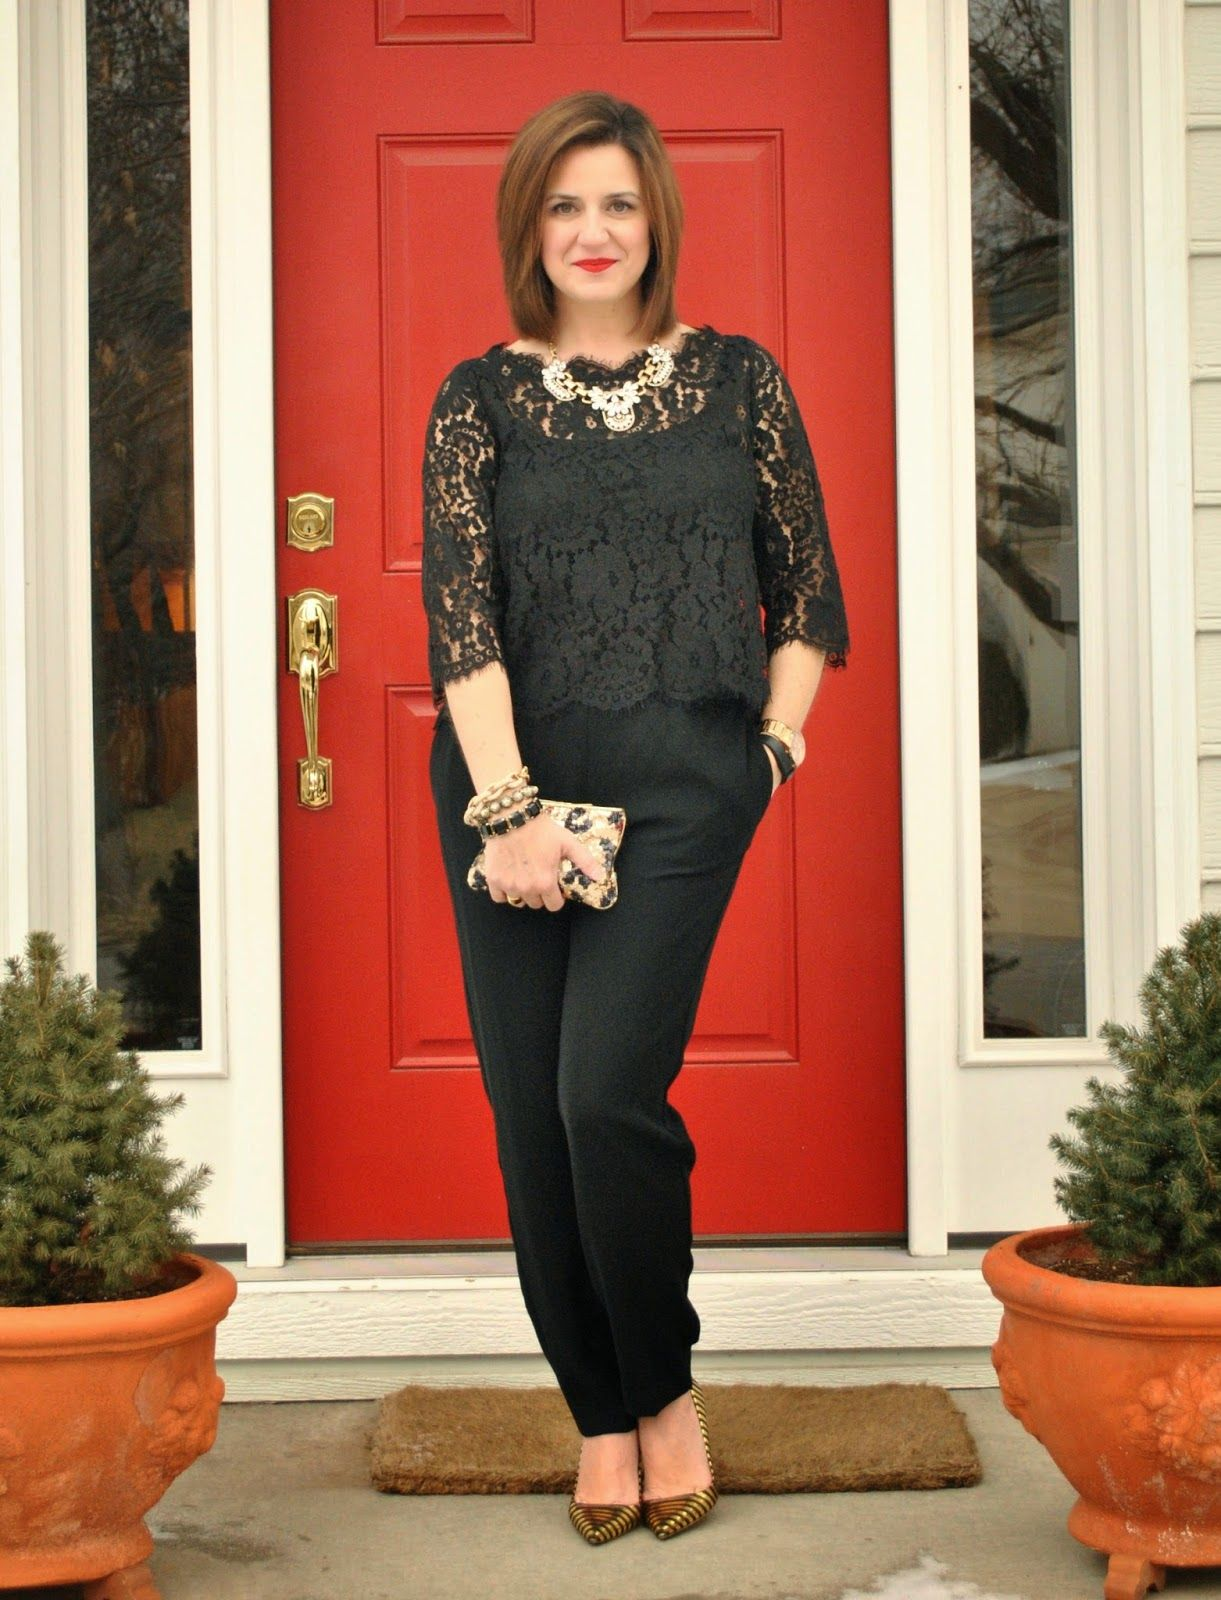 Black Lace Top Black Pants Statement Heels And Sequined